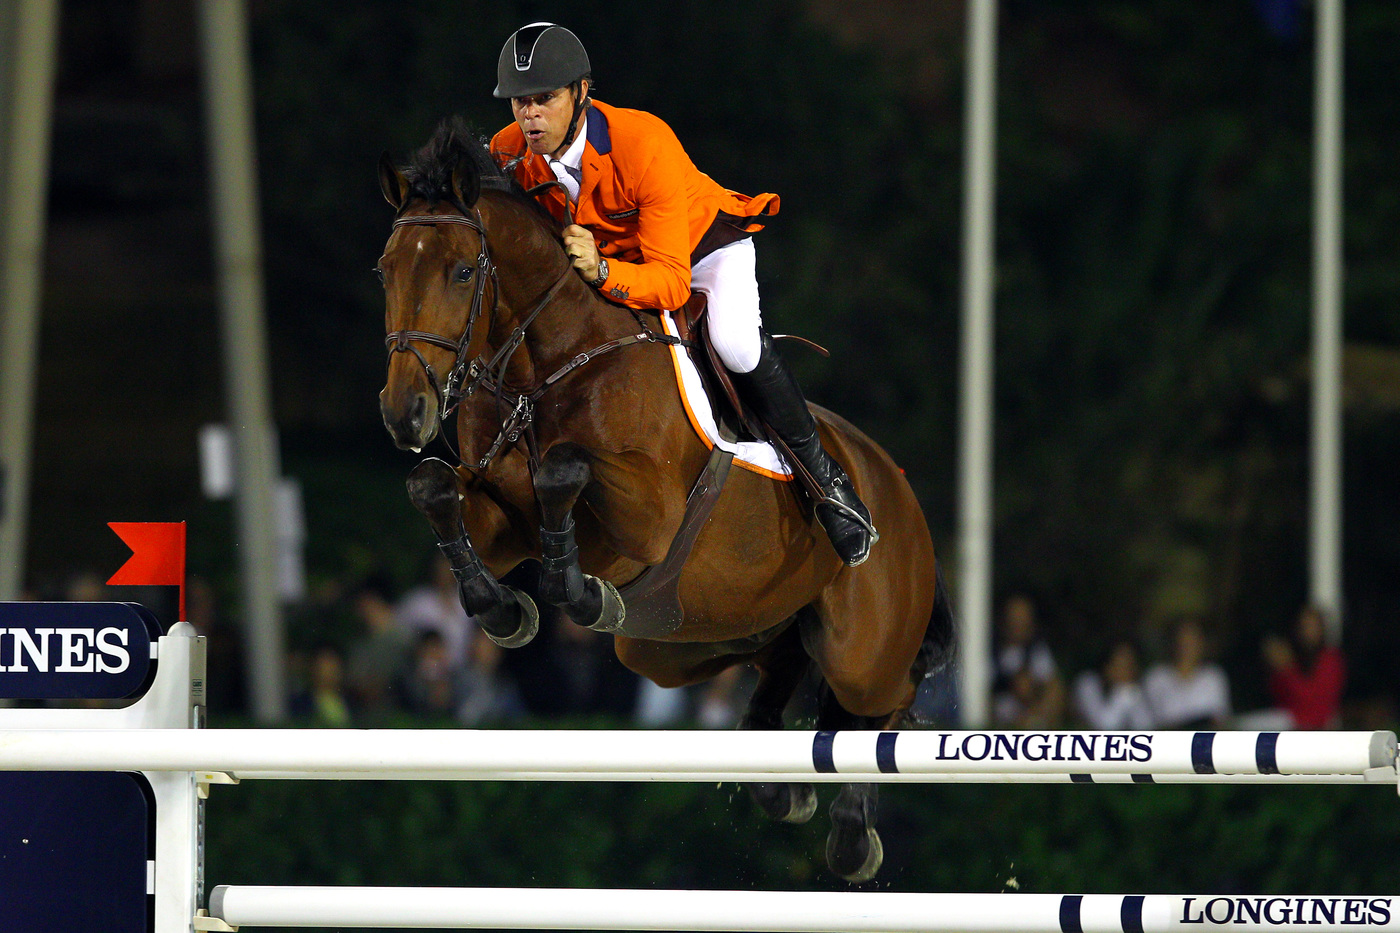 Longines Show Jumping Event: Team Netherlands closes the season with a thrilling victory at the Furusiyya FEI Nations Cup™ Jumping Final (Barcelona, SPAIN)  2